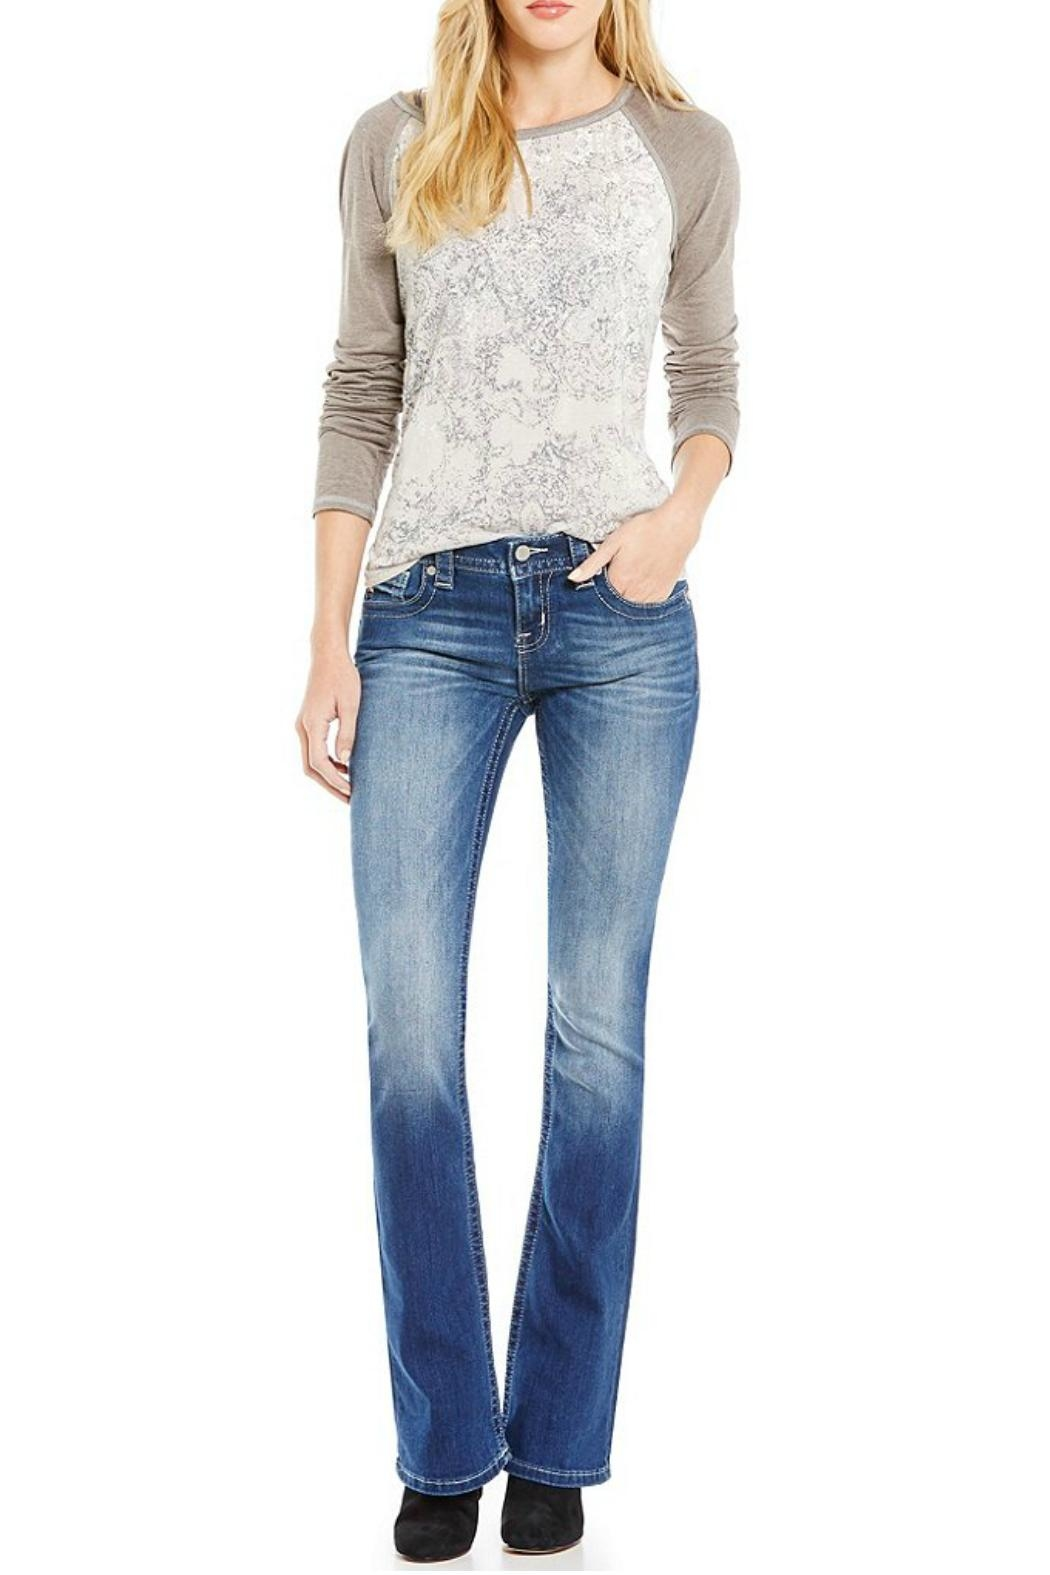 Miss Me Whiskered Mid Rise Jeans - Main Image